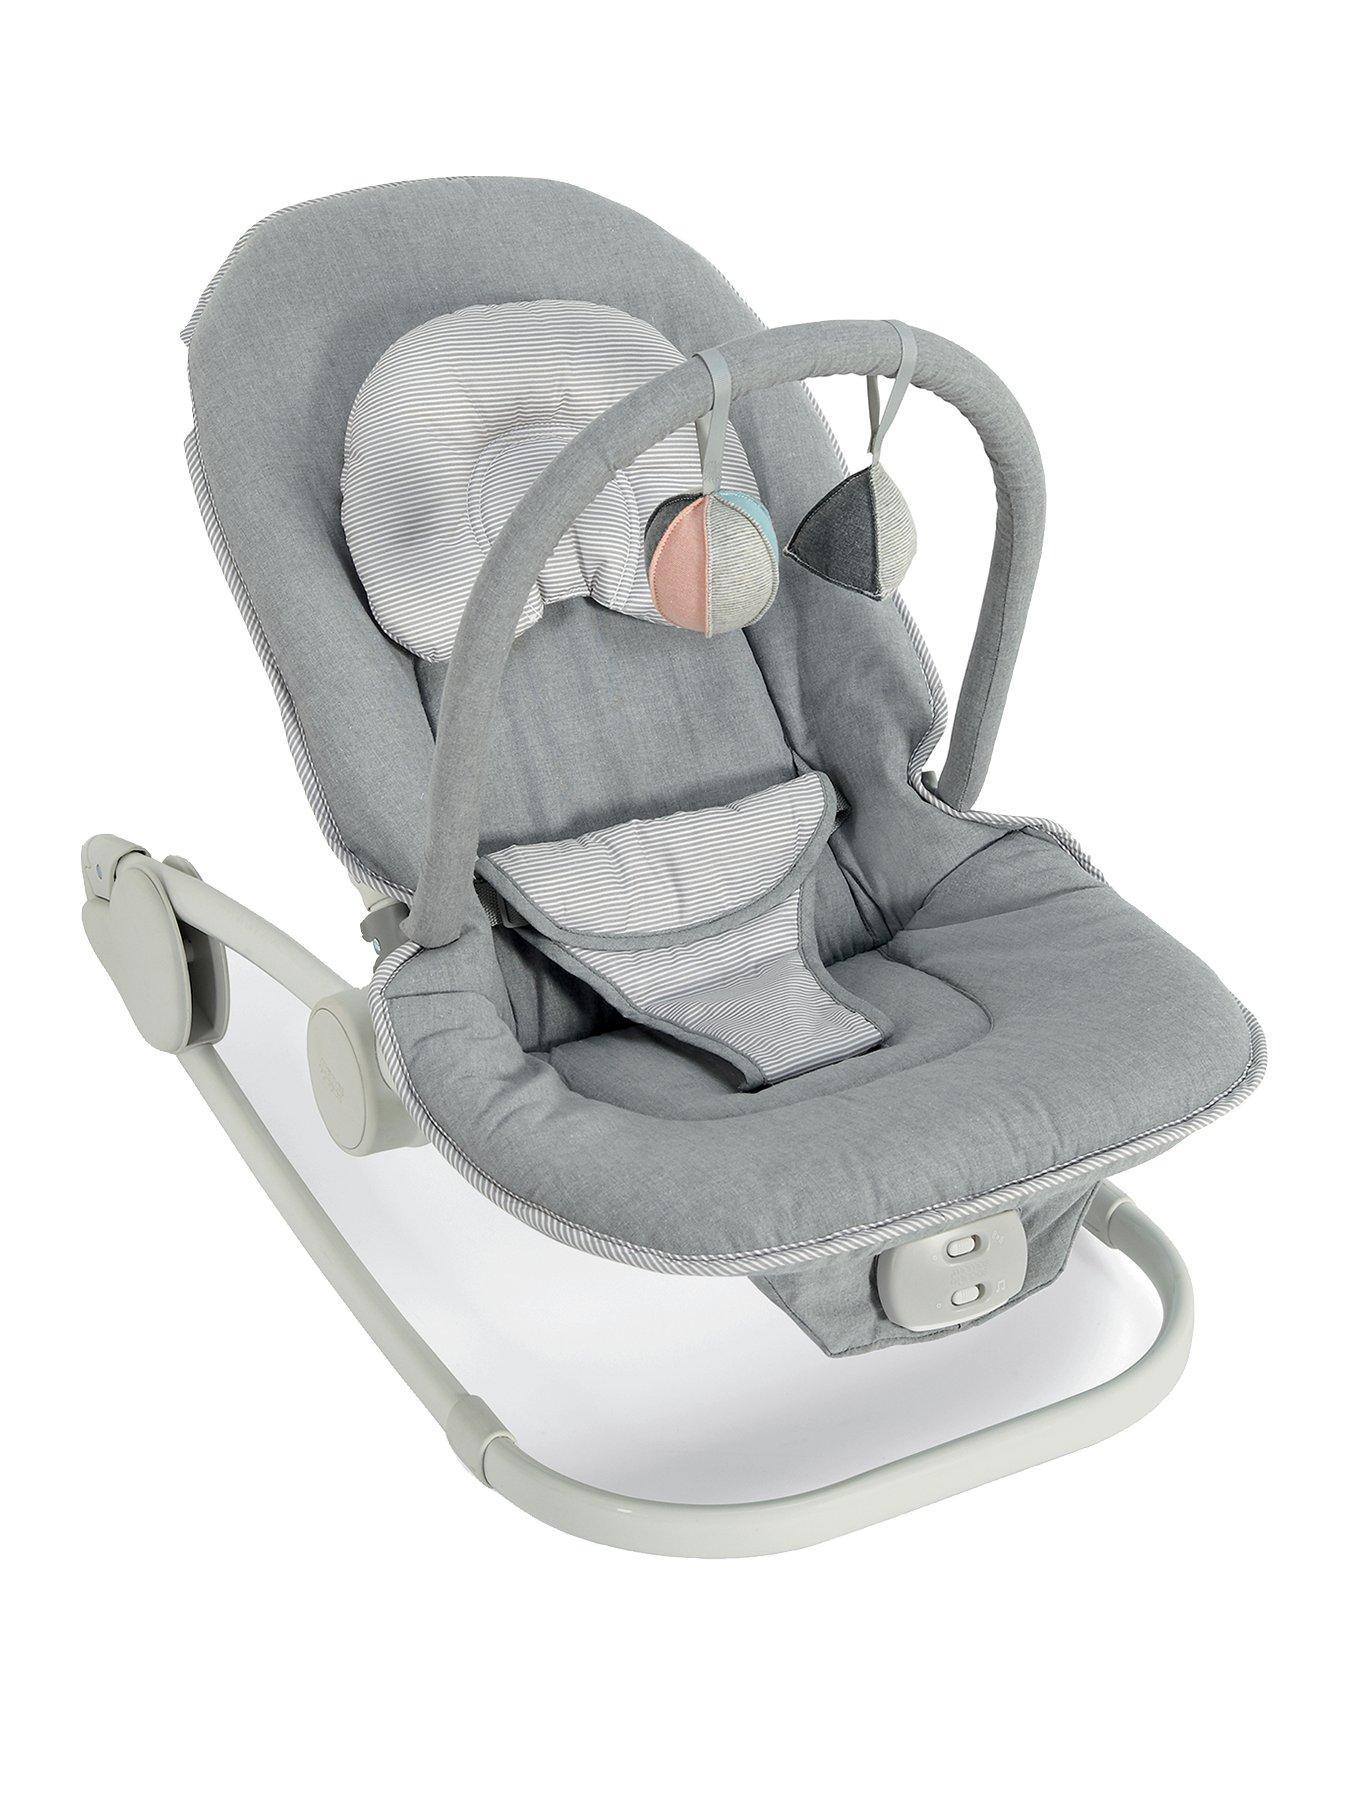 swing chair mamas and papas covers spandex bouncers walkers swings child baby www very wave rocking cradle grey